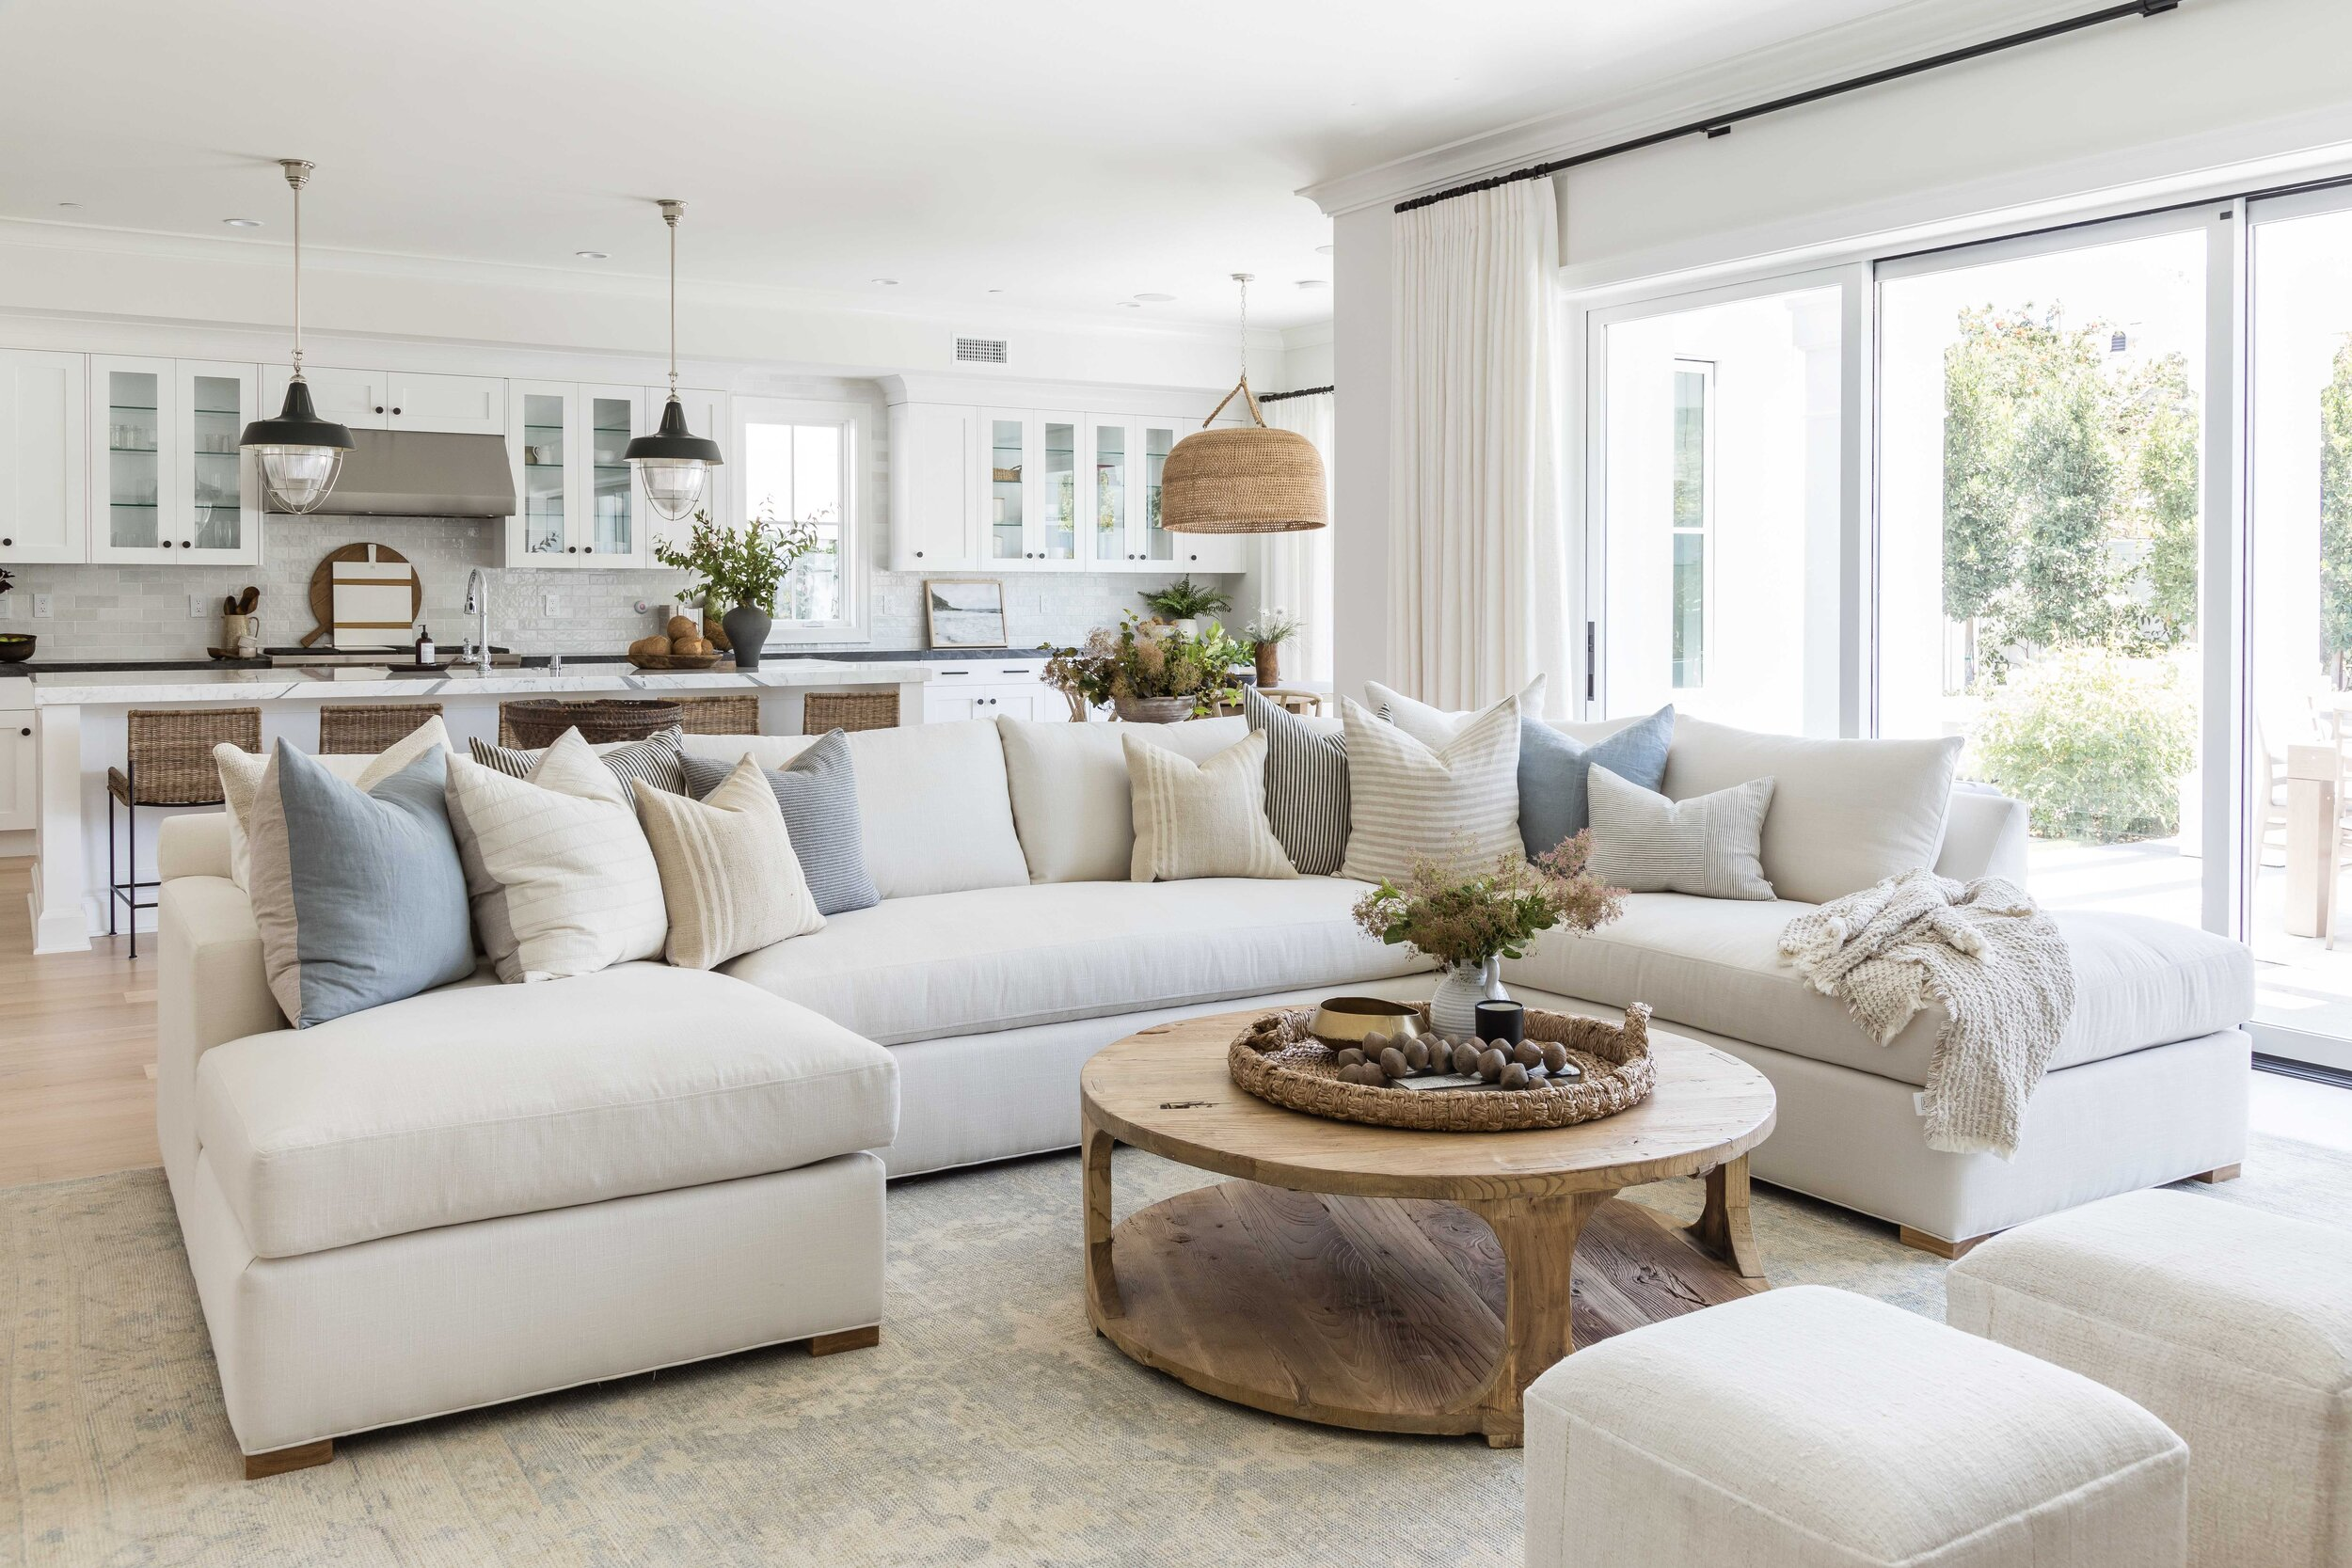 The Best Interior Design Color Palettes for Waterfront Homes